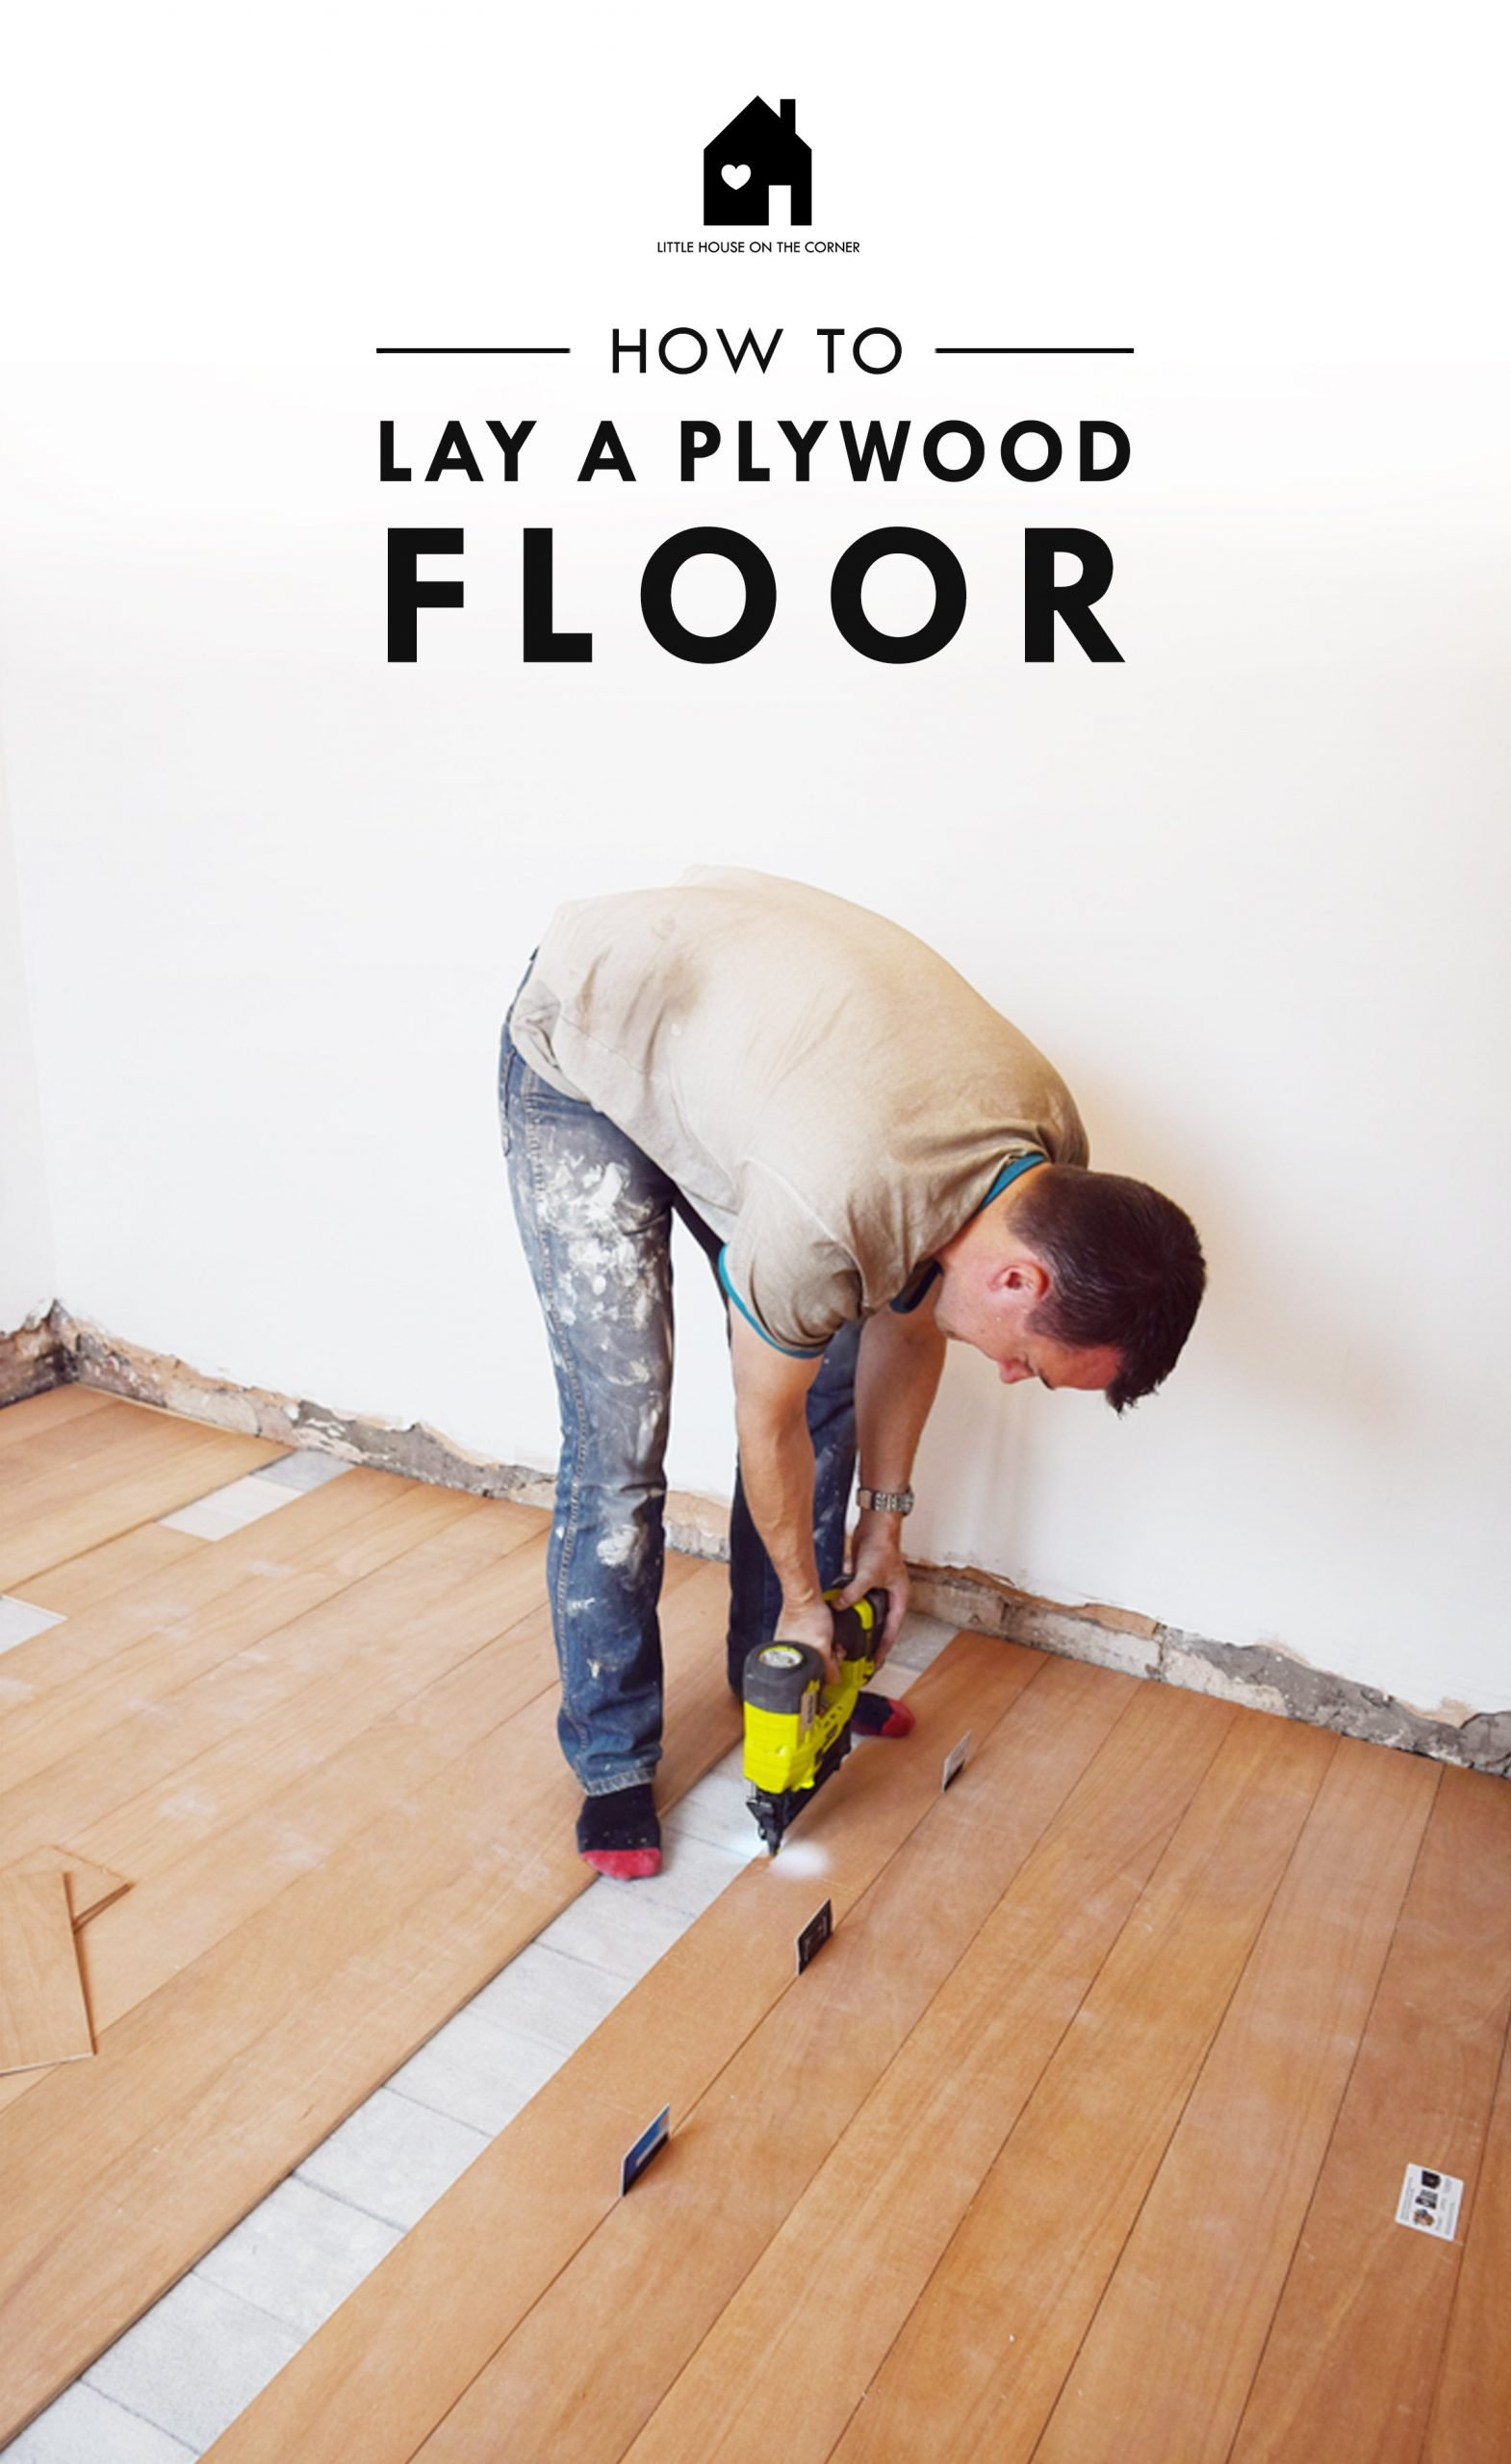 How To Lay A Plywood Floor, How To Install Laminate Wood Flooring Over Plywood